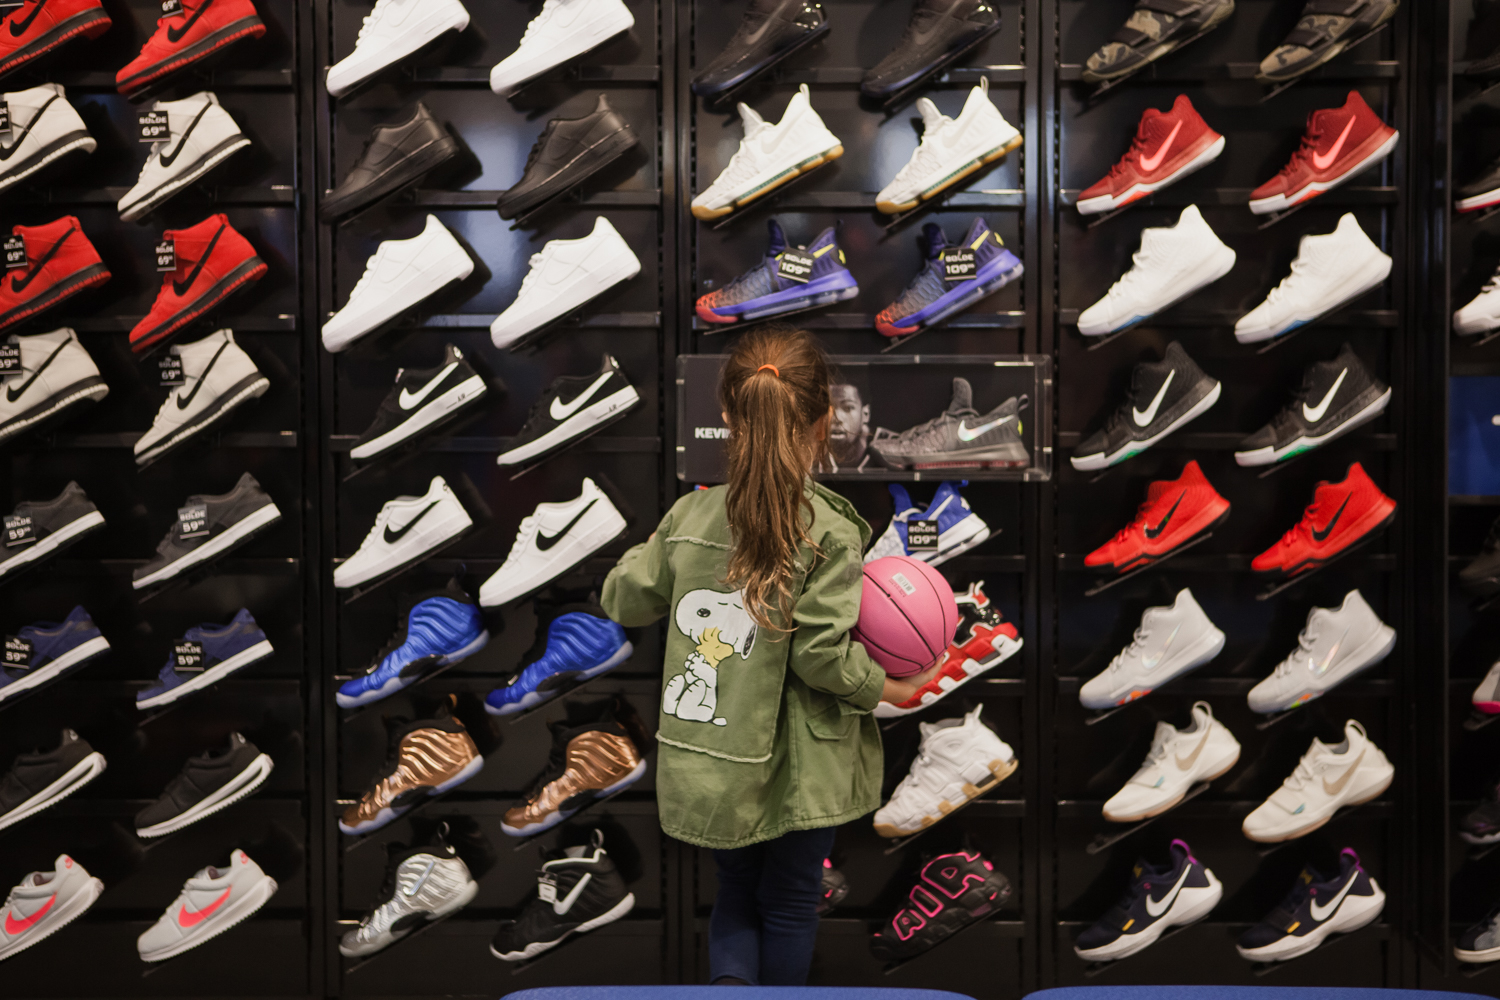 Kids Foot Locker is now in Carrefour laval with mademoiselle jules fashion blogger